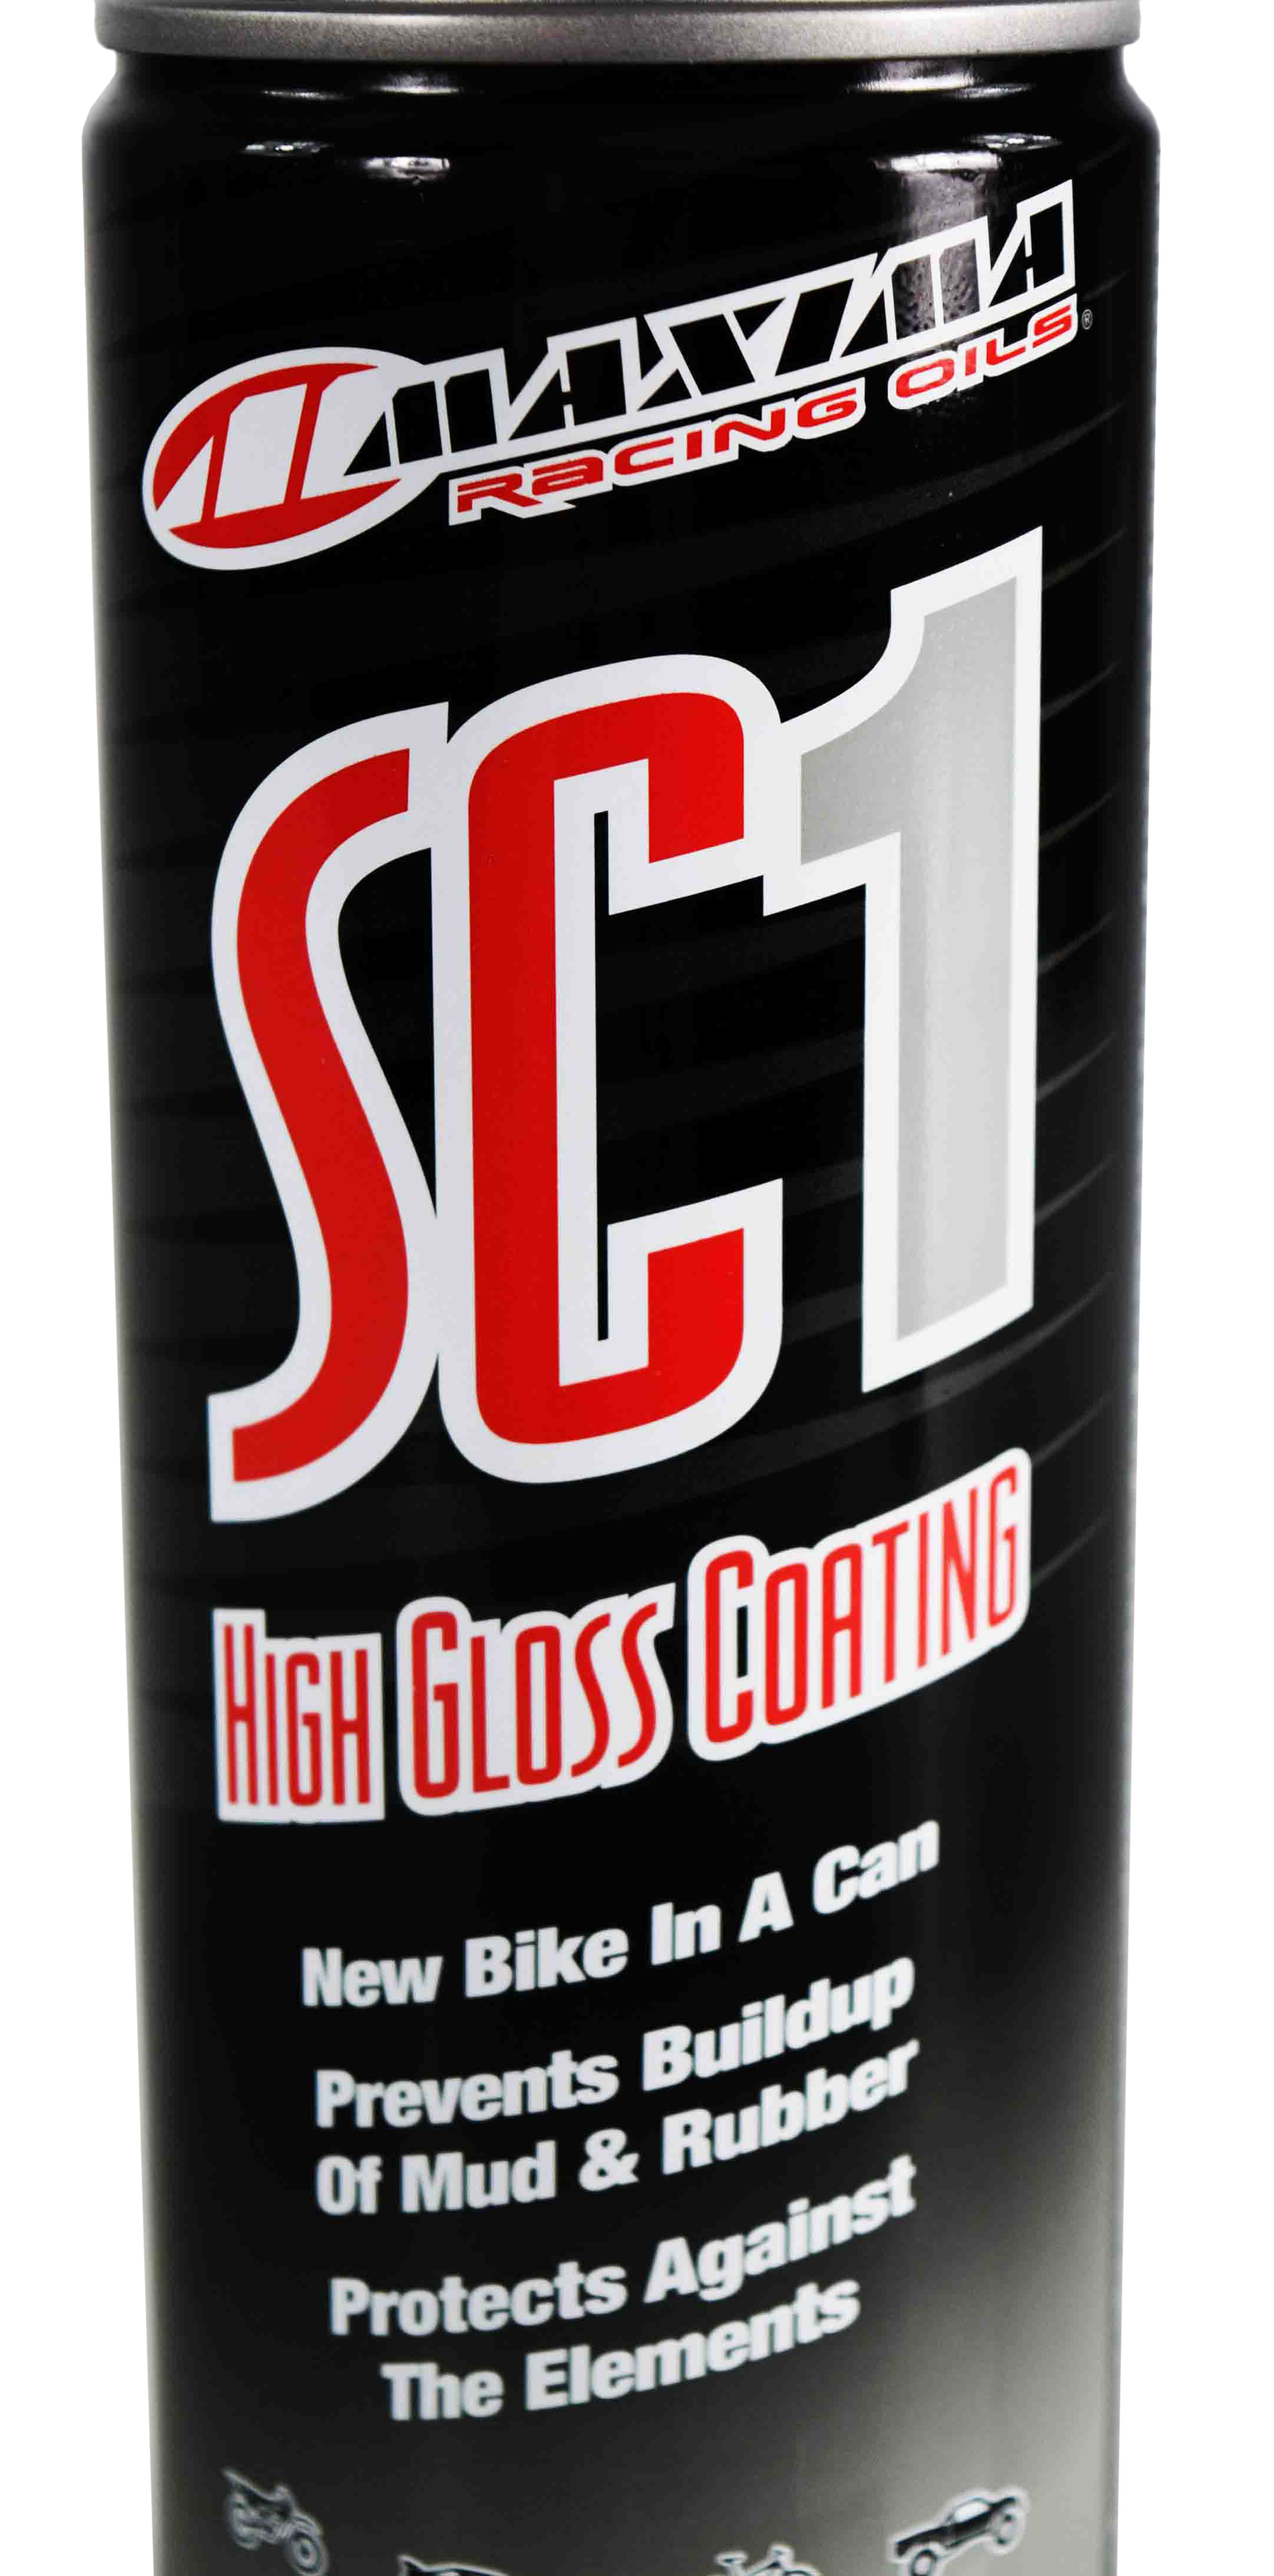 Maxima Racing Oils SC1 High Gloss Silicone Clear Coat Spray Cleaner 17 2  Fl  Oz (1 Pack) w/ Air Freshener